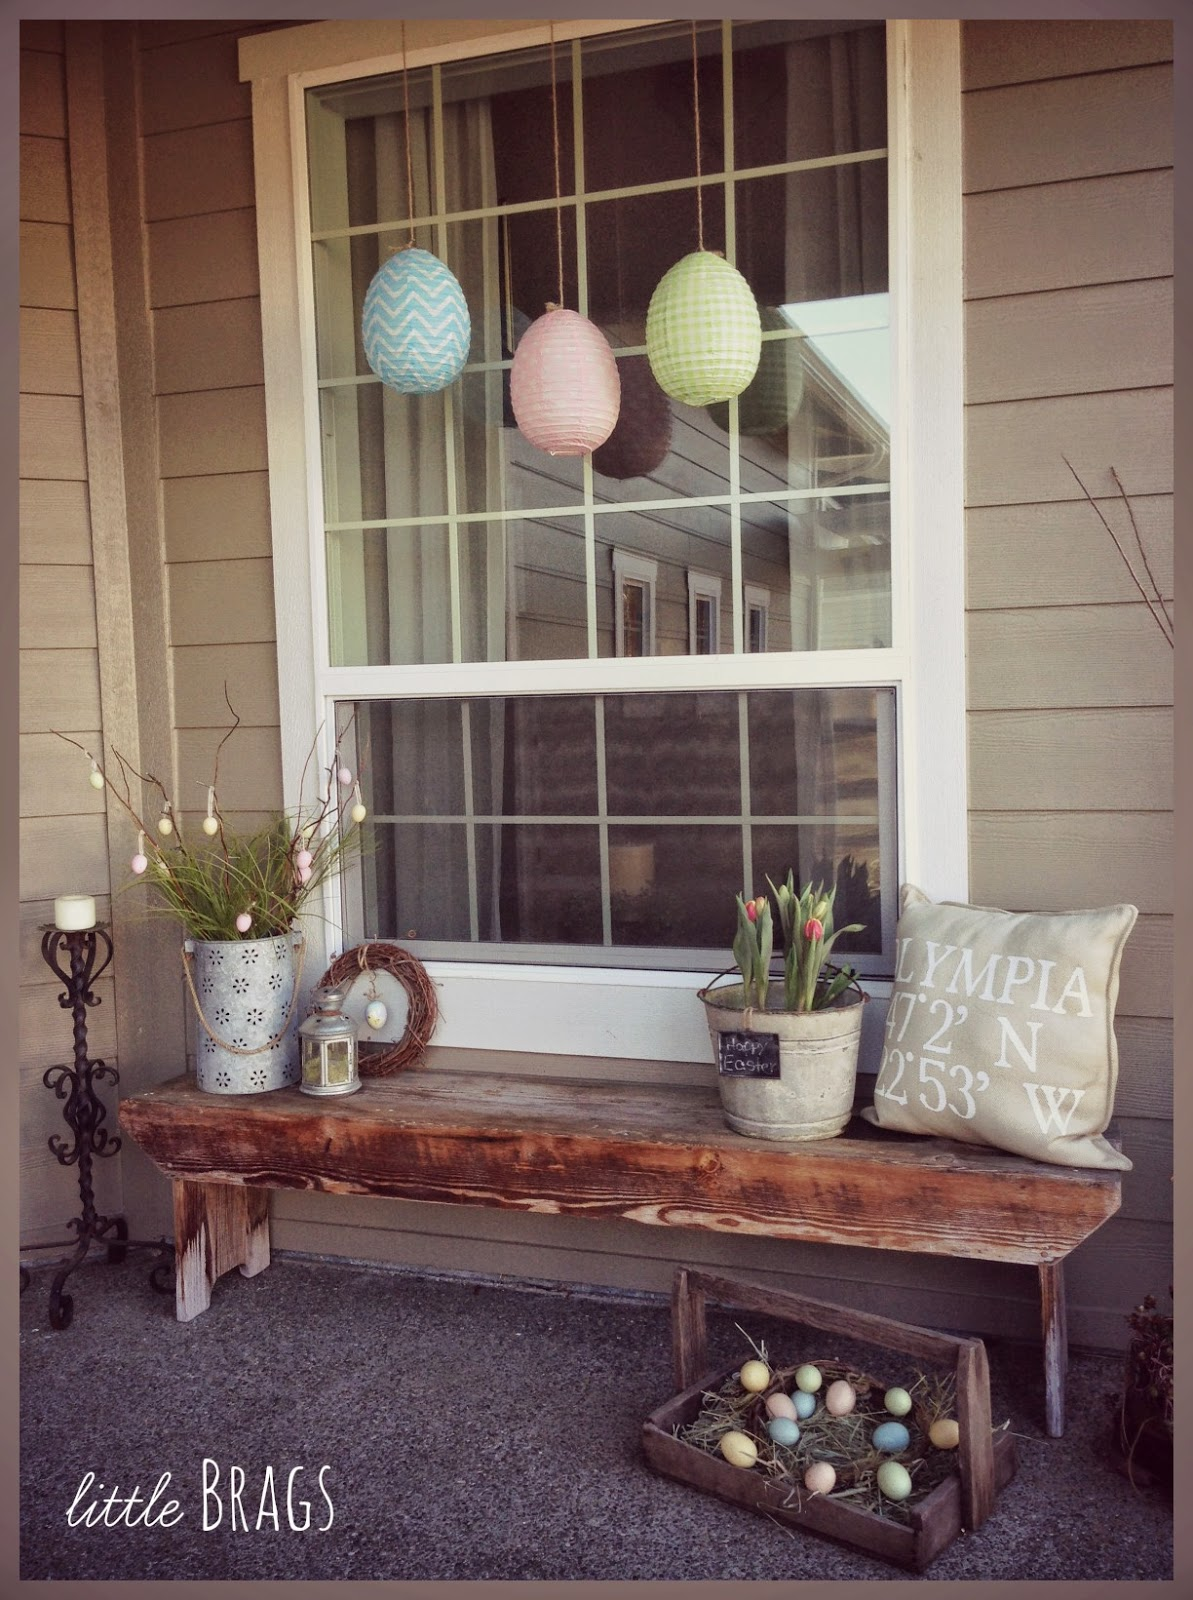 Little brags a little easter decorating on the front porch for Porch decor